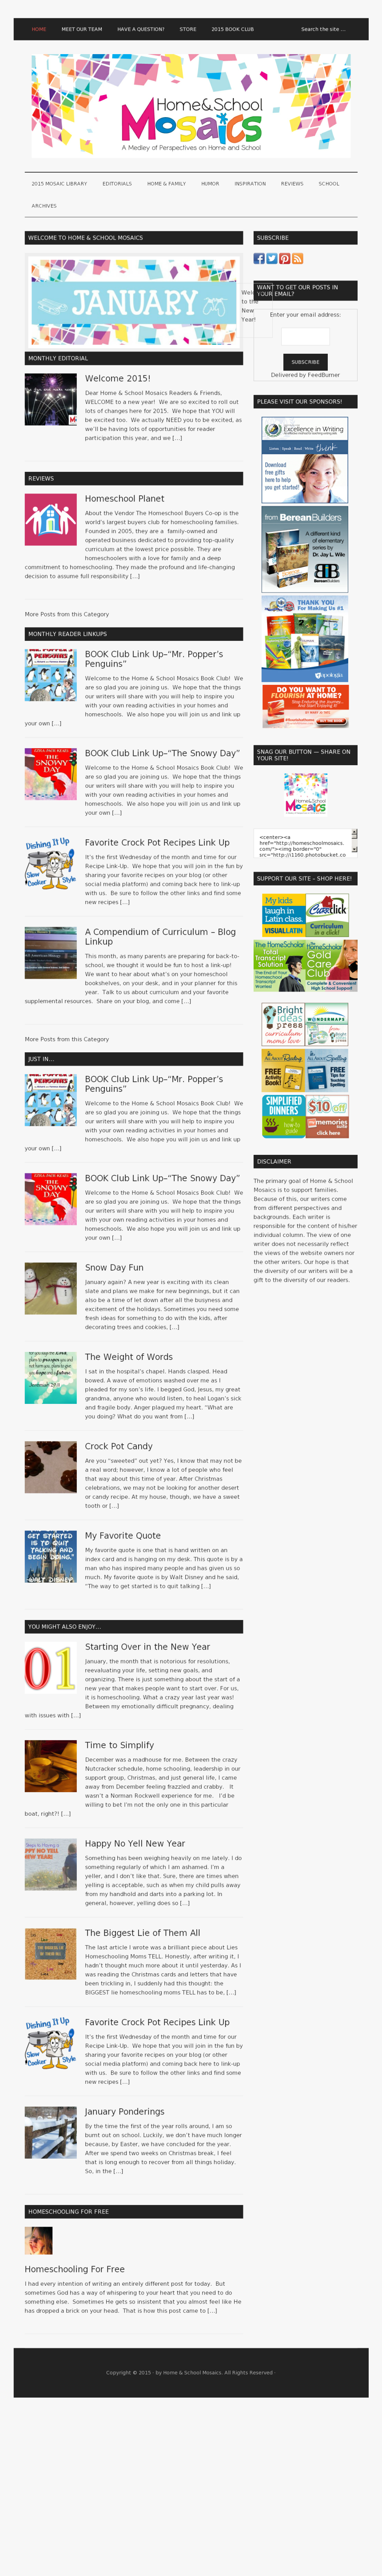 Web Page, HD Png Download, Free Download